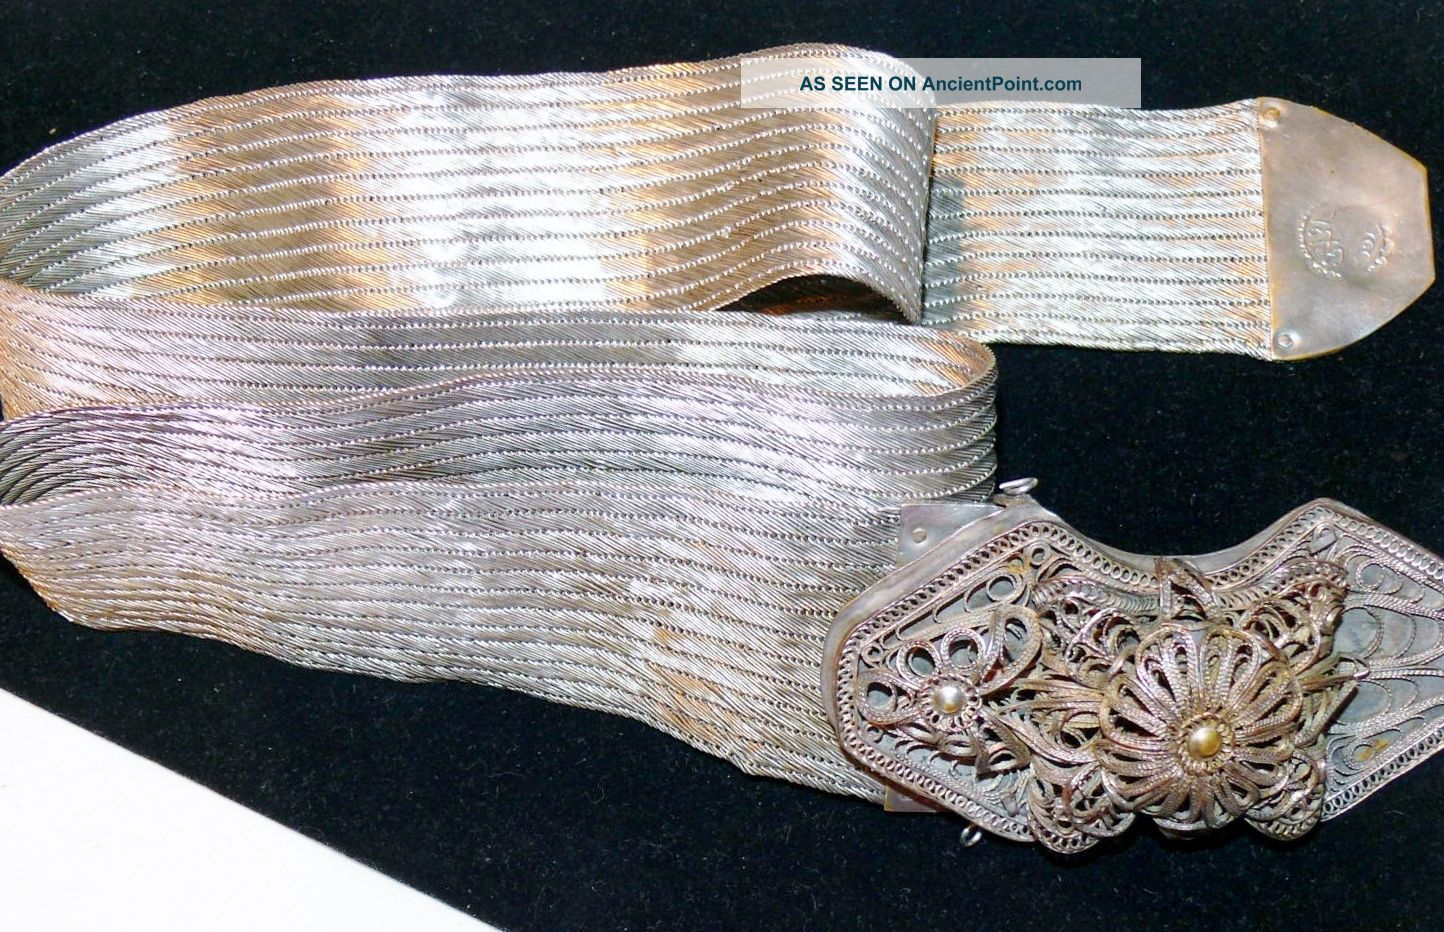 Antique 19th C Islamic Turkish Ottoman Empire Silver Belt Filigree Tughra Mark Middle East photo